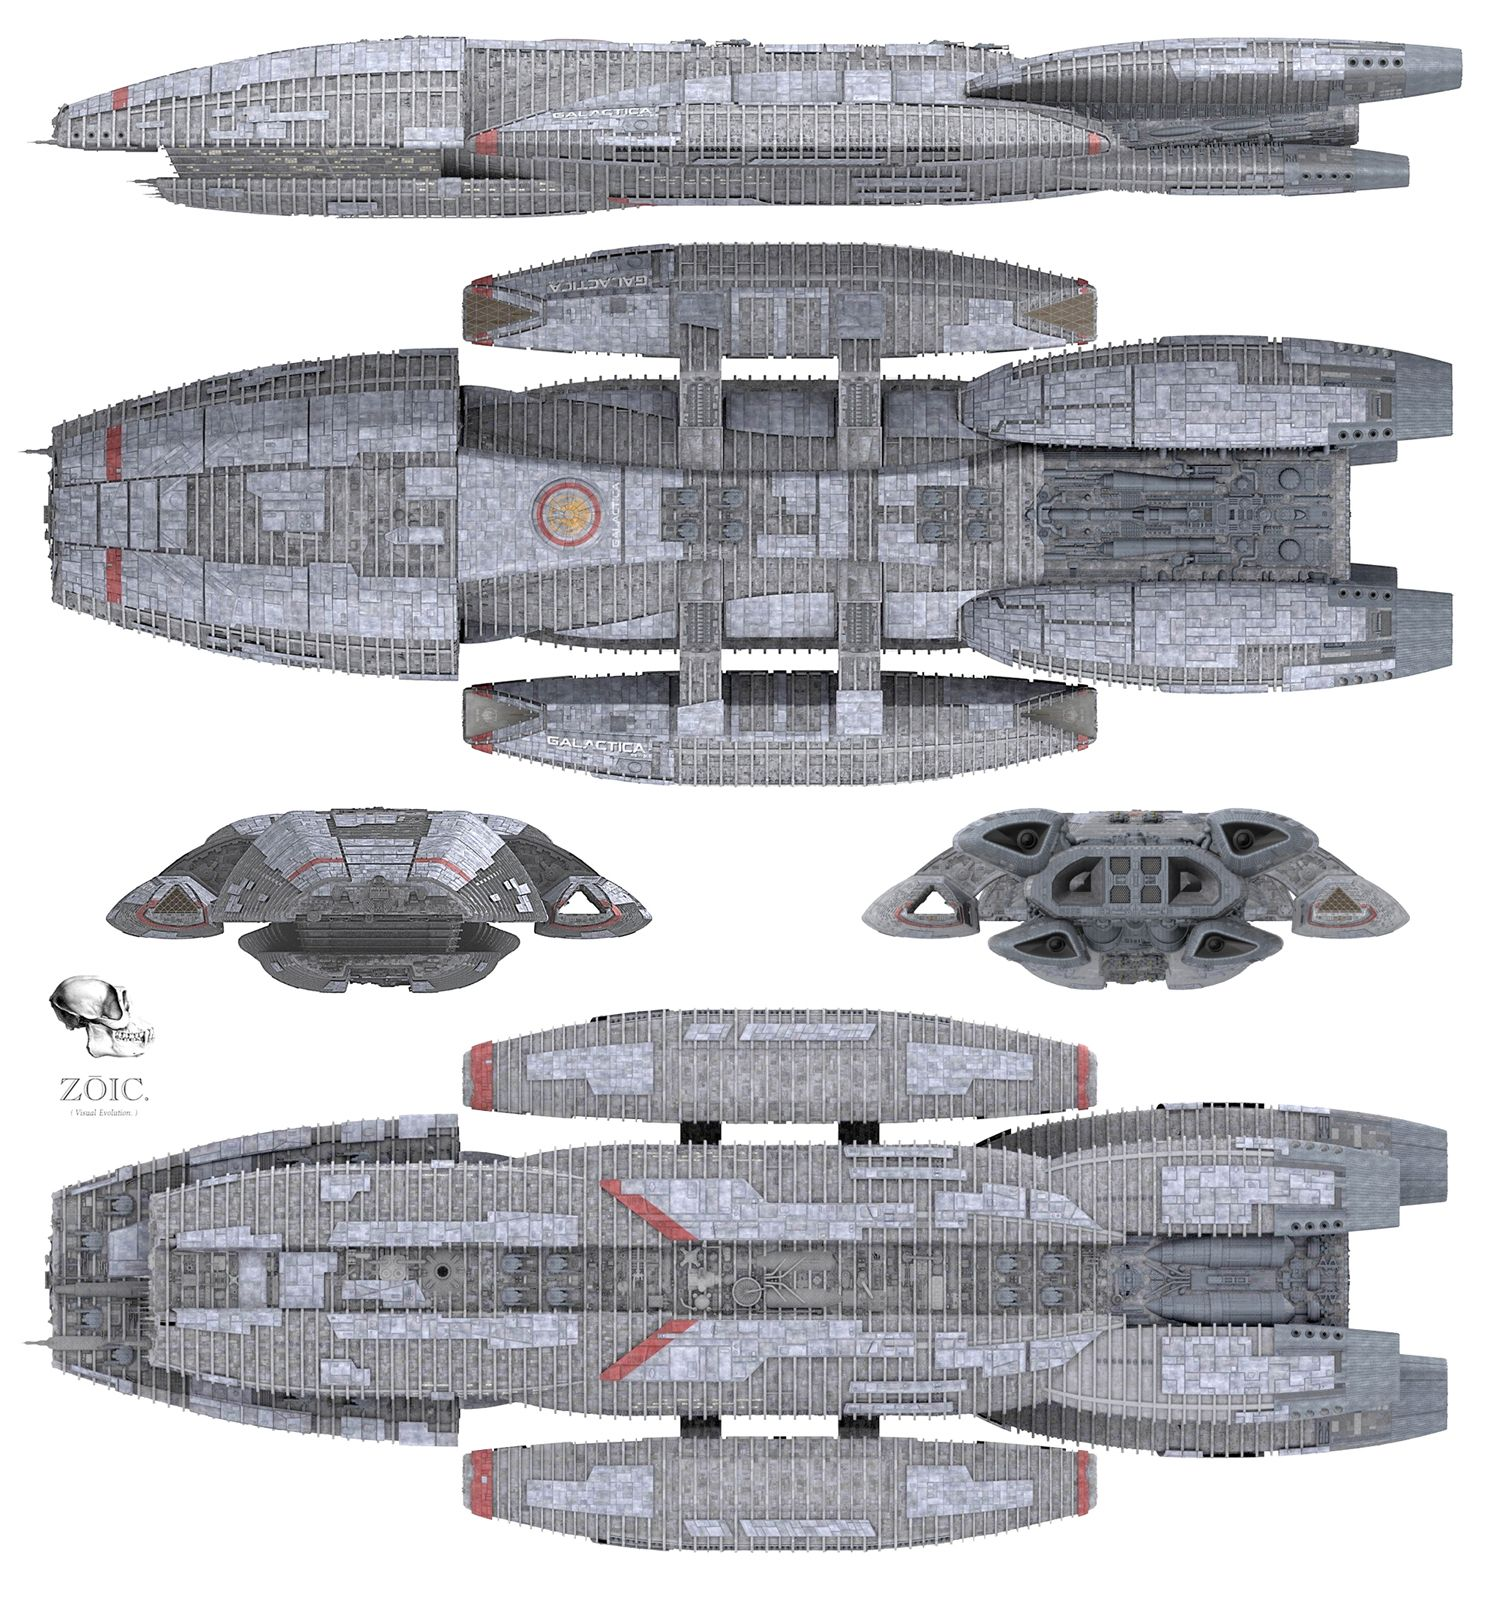 Zoic cgi model of battlestar galactica